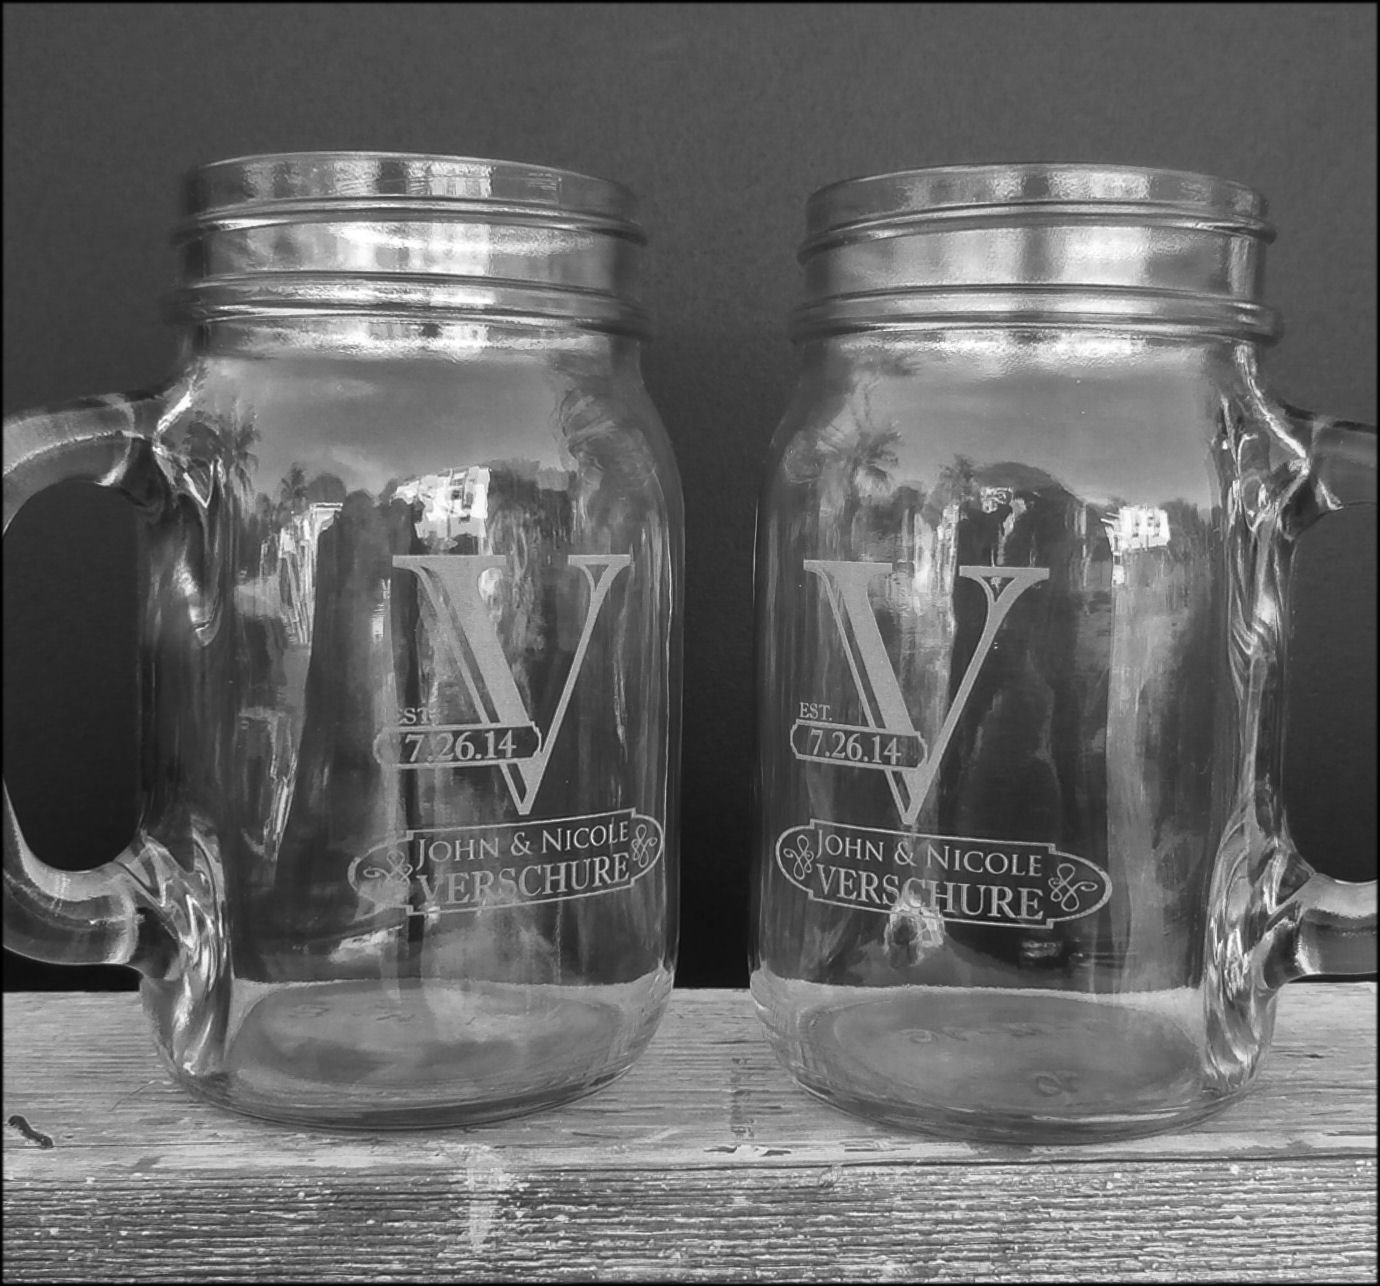 Initial Mr Mrs Set of 2 Personalized Mason Jars Drinking Mugs with Handle Personalized Custom Etched with Name and Date for Wedding, Engagement Anniversary Bridal Party Gift of Favor for Newlyweds Couple Etched Laser Engraved His and Hers Couple Gift Idea by Custom-Engraved-Glasses-by-StockingFactory (Image #5)